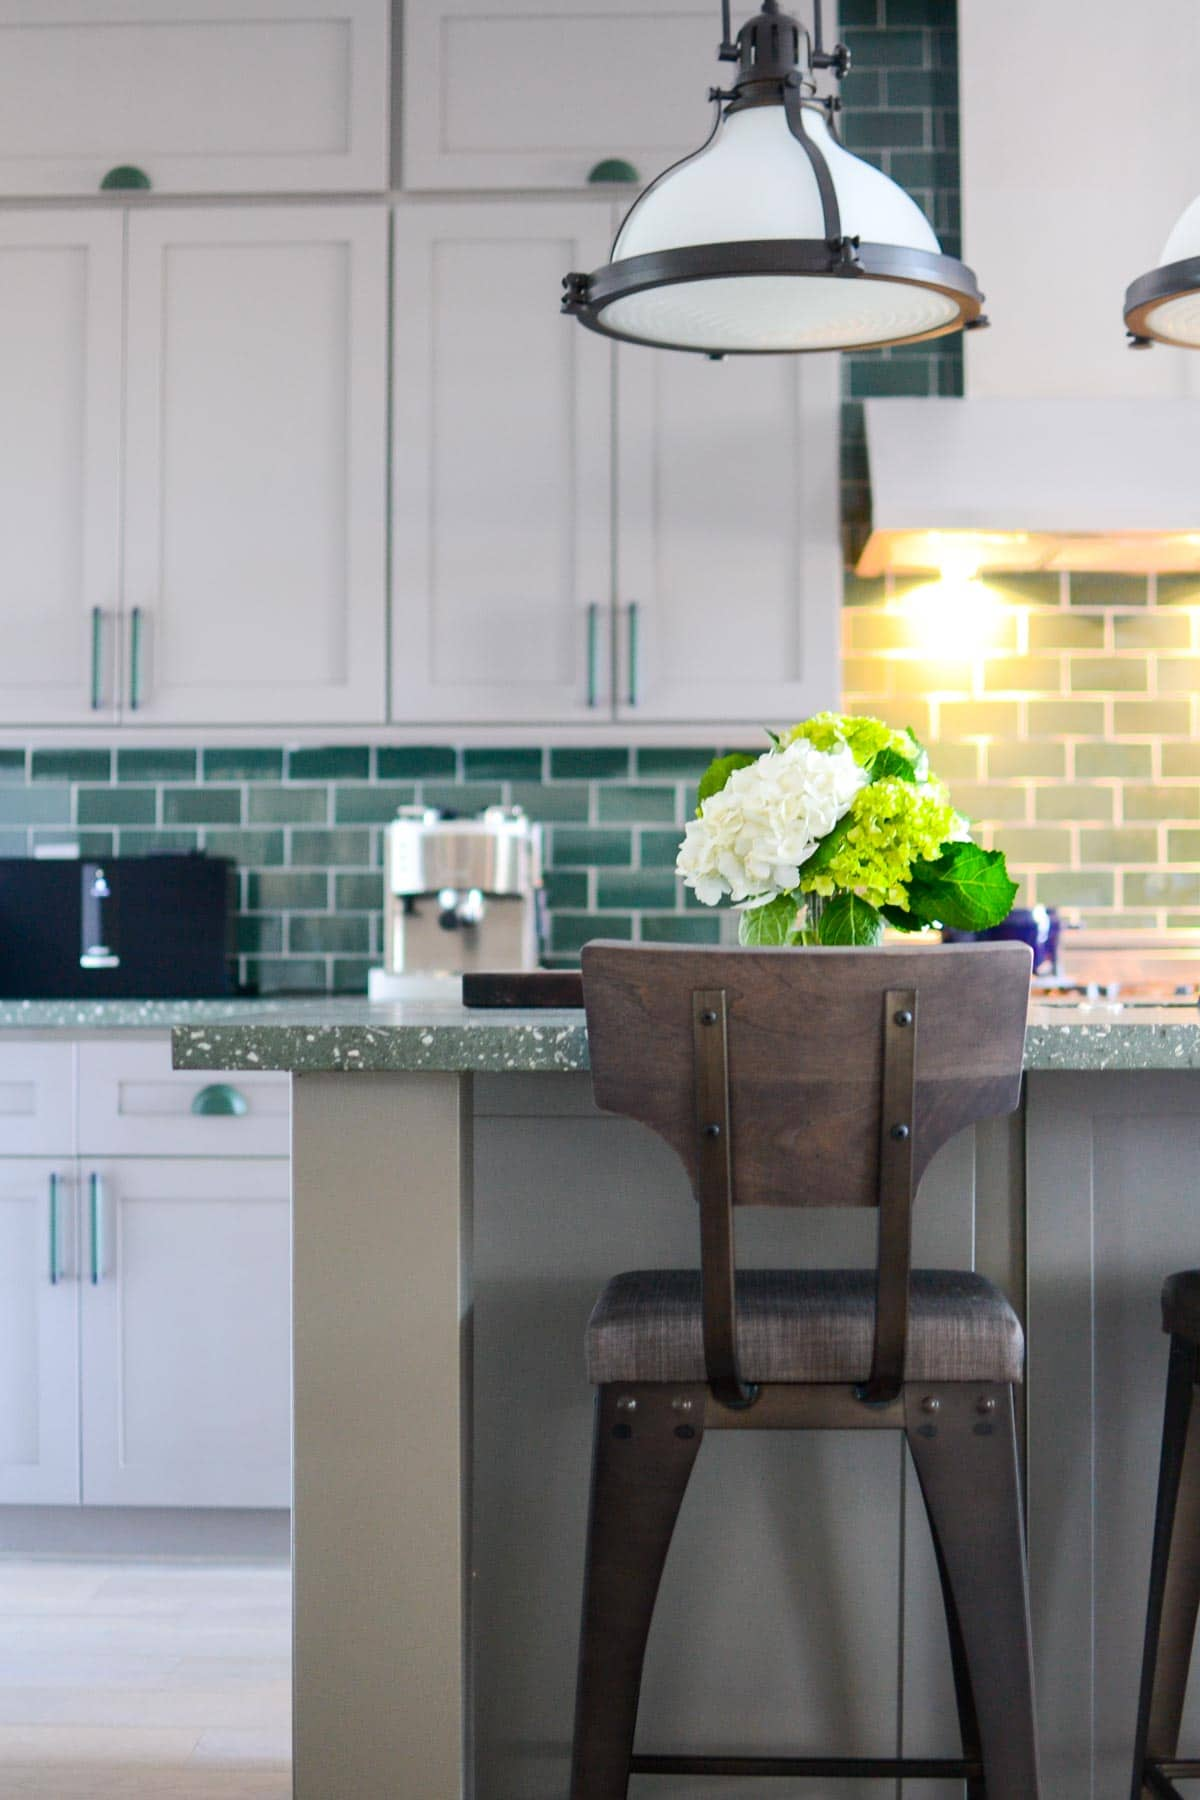 7 Tips For Decorating A Green Kitchen Rustic Touches In Furniture Helps Ground The